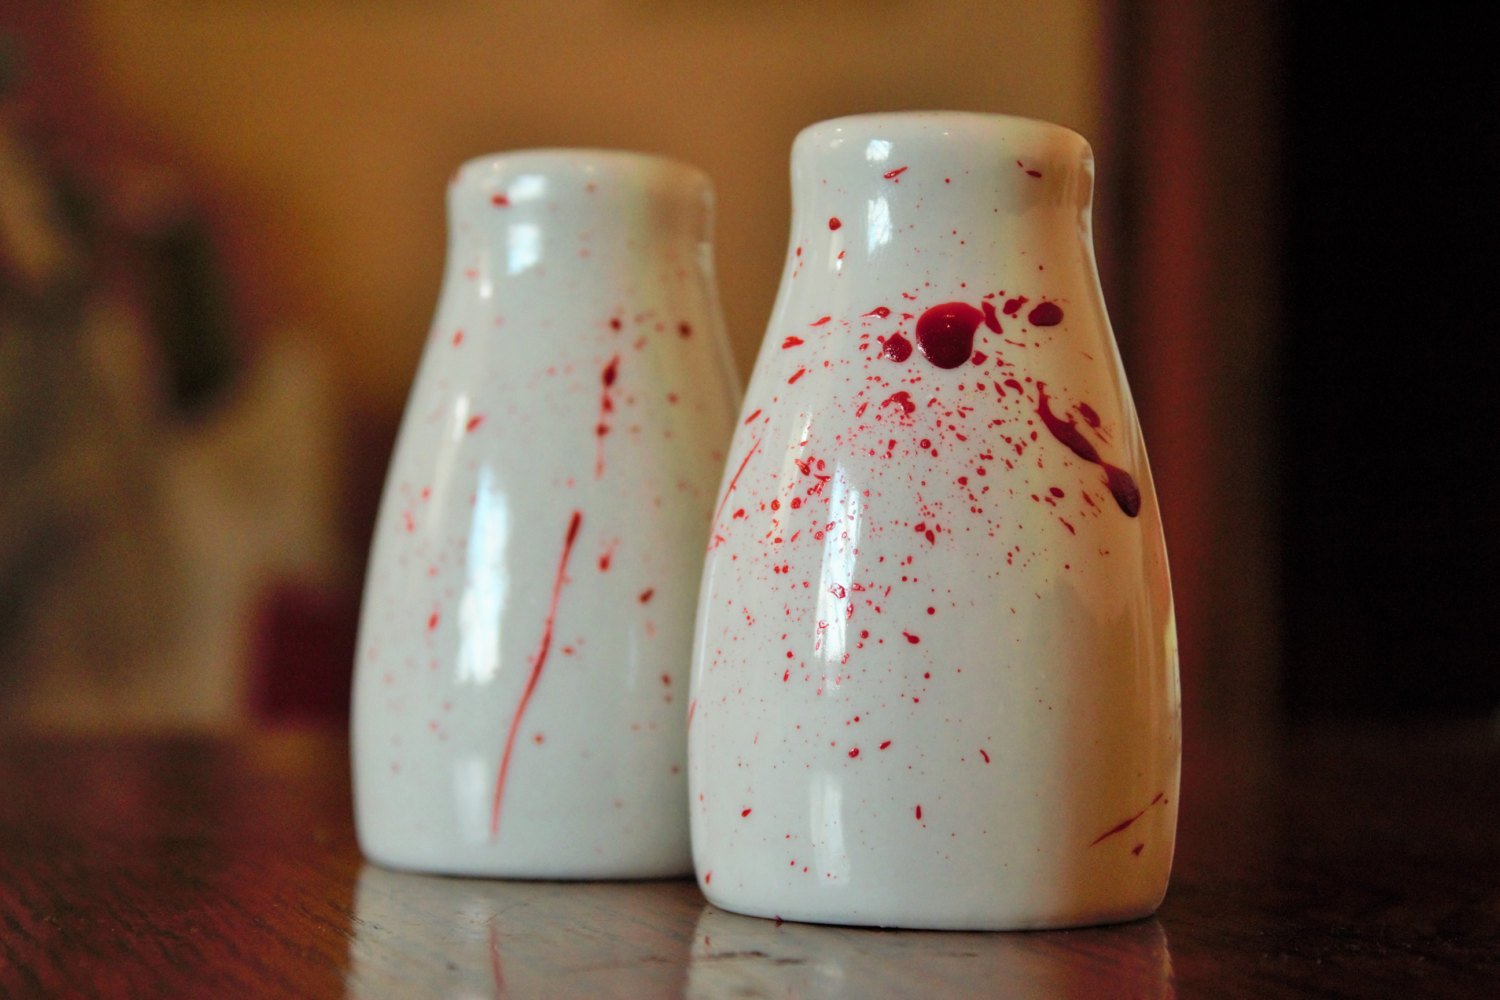 Hand Painted Porcelain - Supernatural - Bitch Jerk - Idjit Assbutt - Salt and Pepper shakers - ByCandlelight27